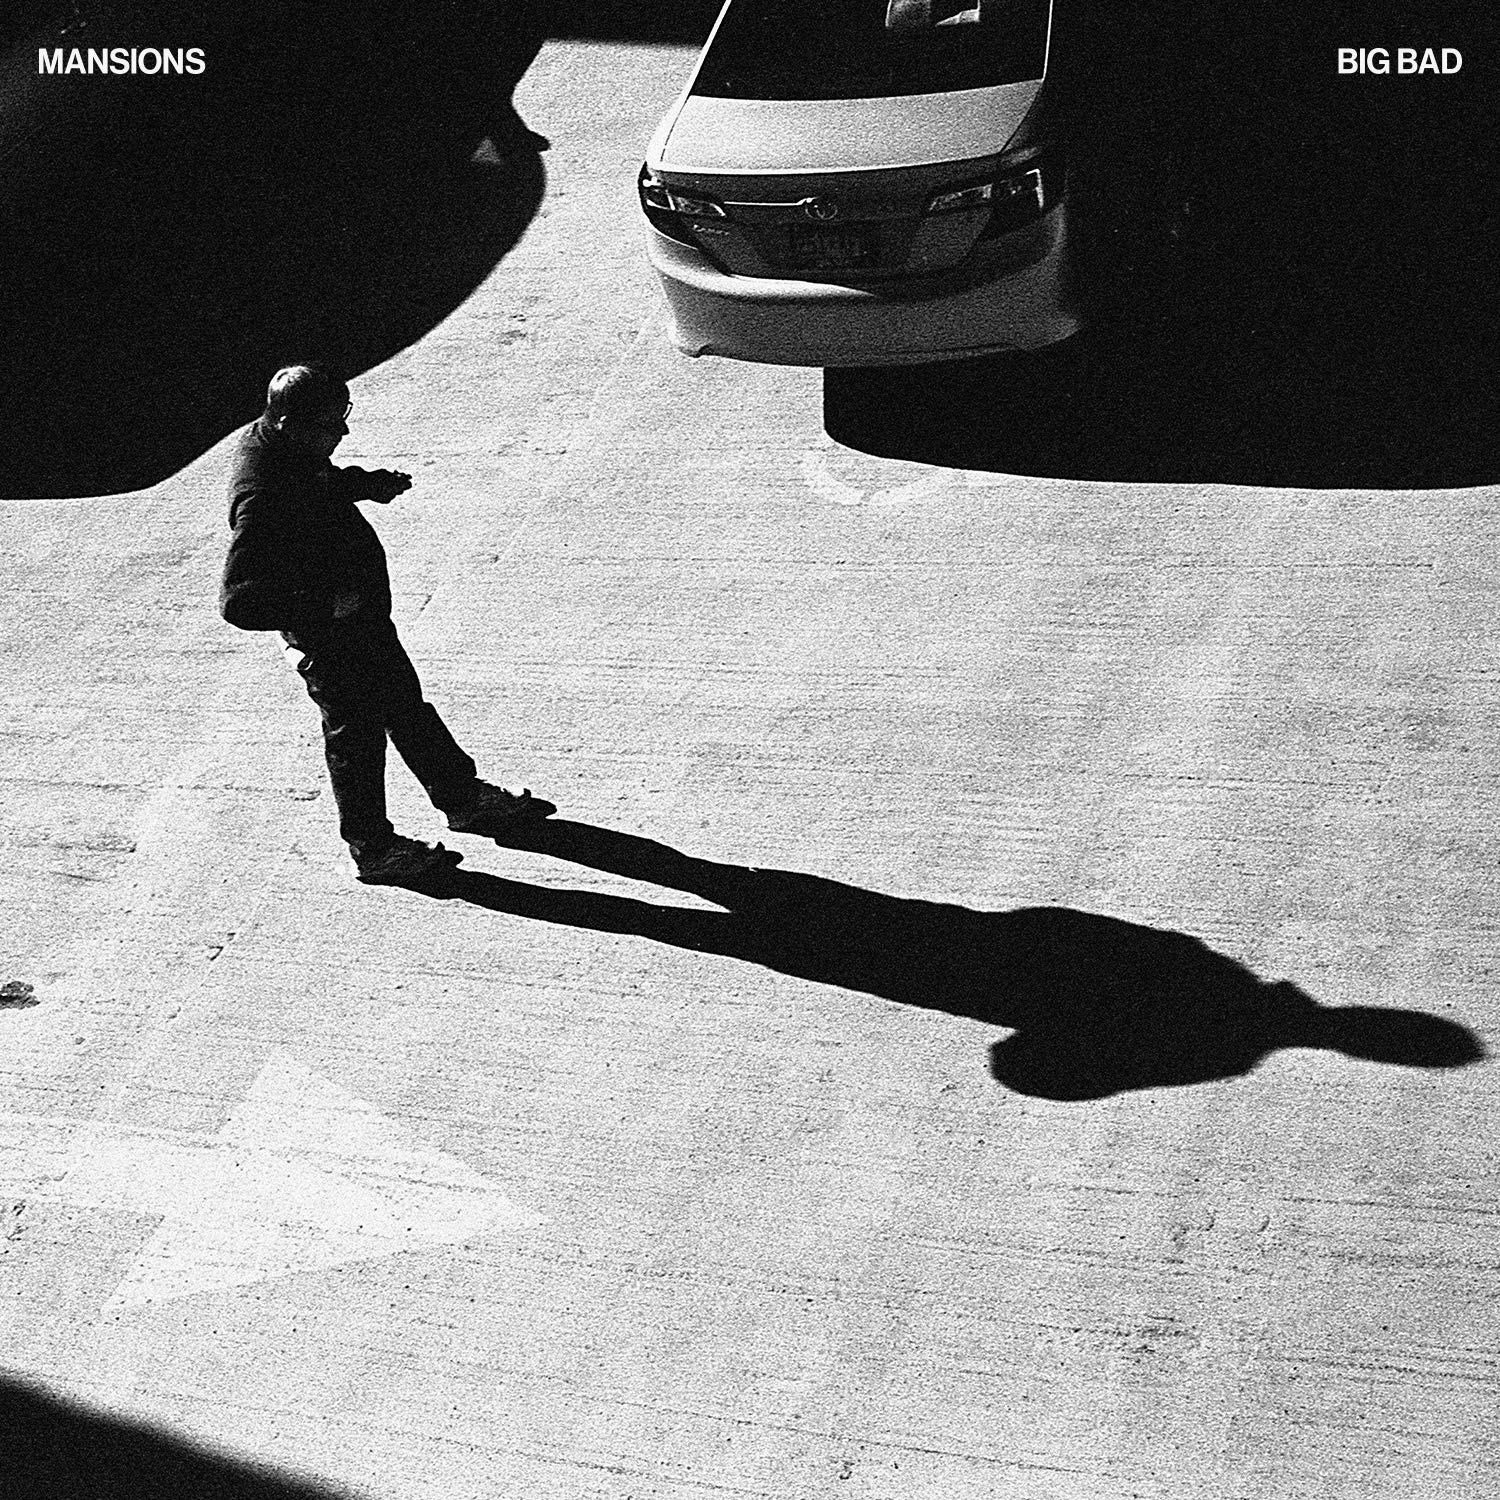 Mansions - Big Bad [LP] (Coke Bottle Clear Vinyl) - Urban Vinyl | Records, Headphones, and more.